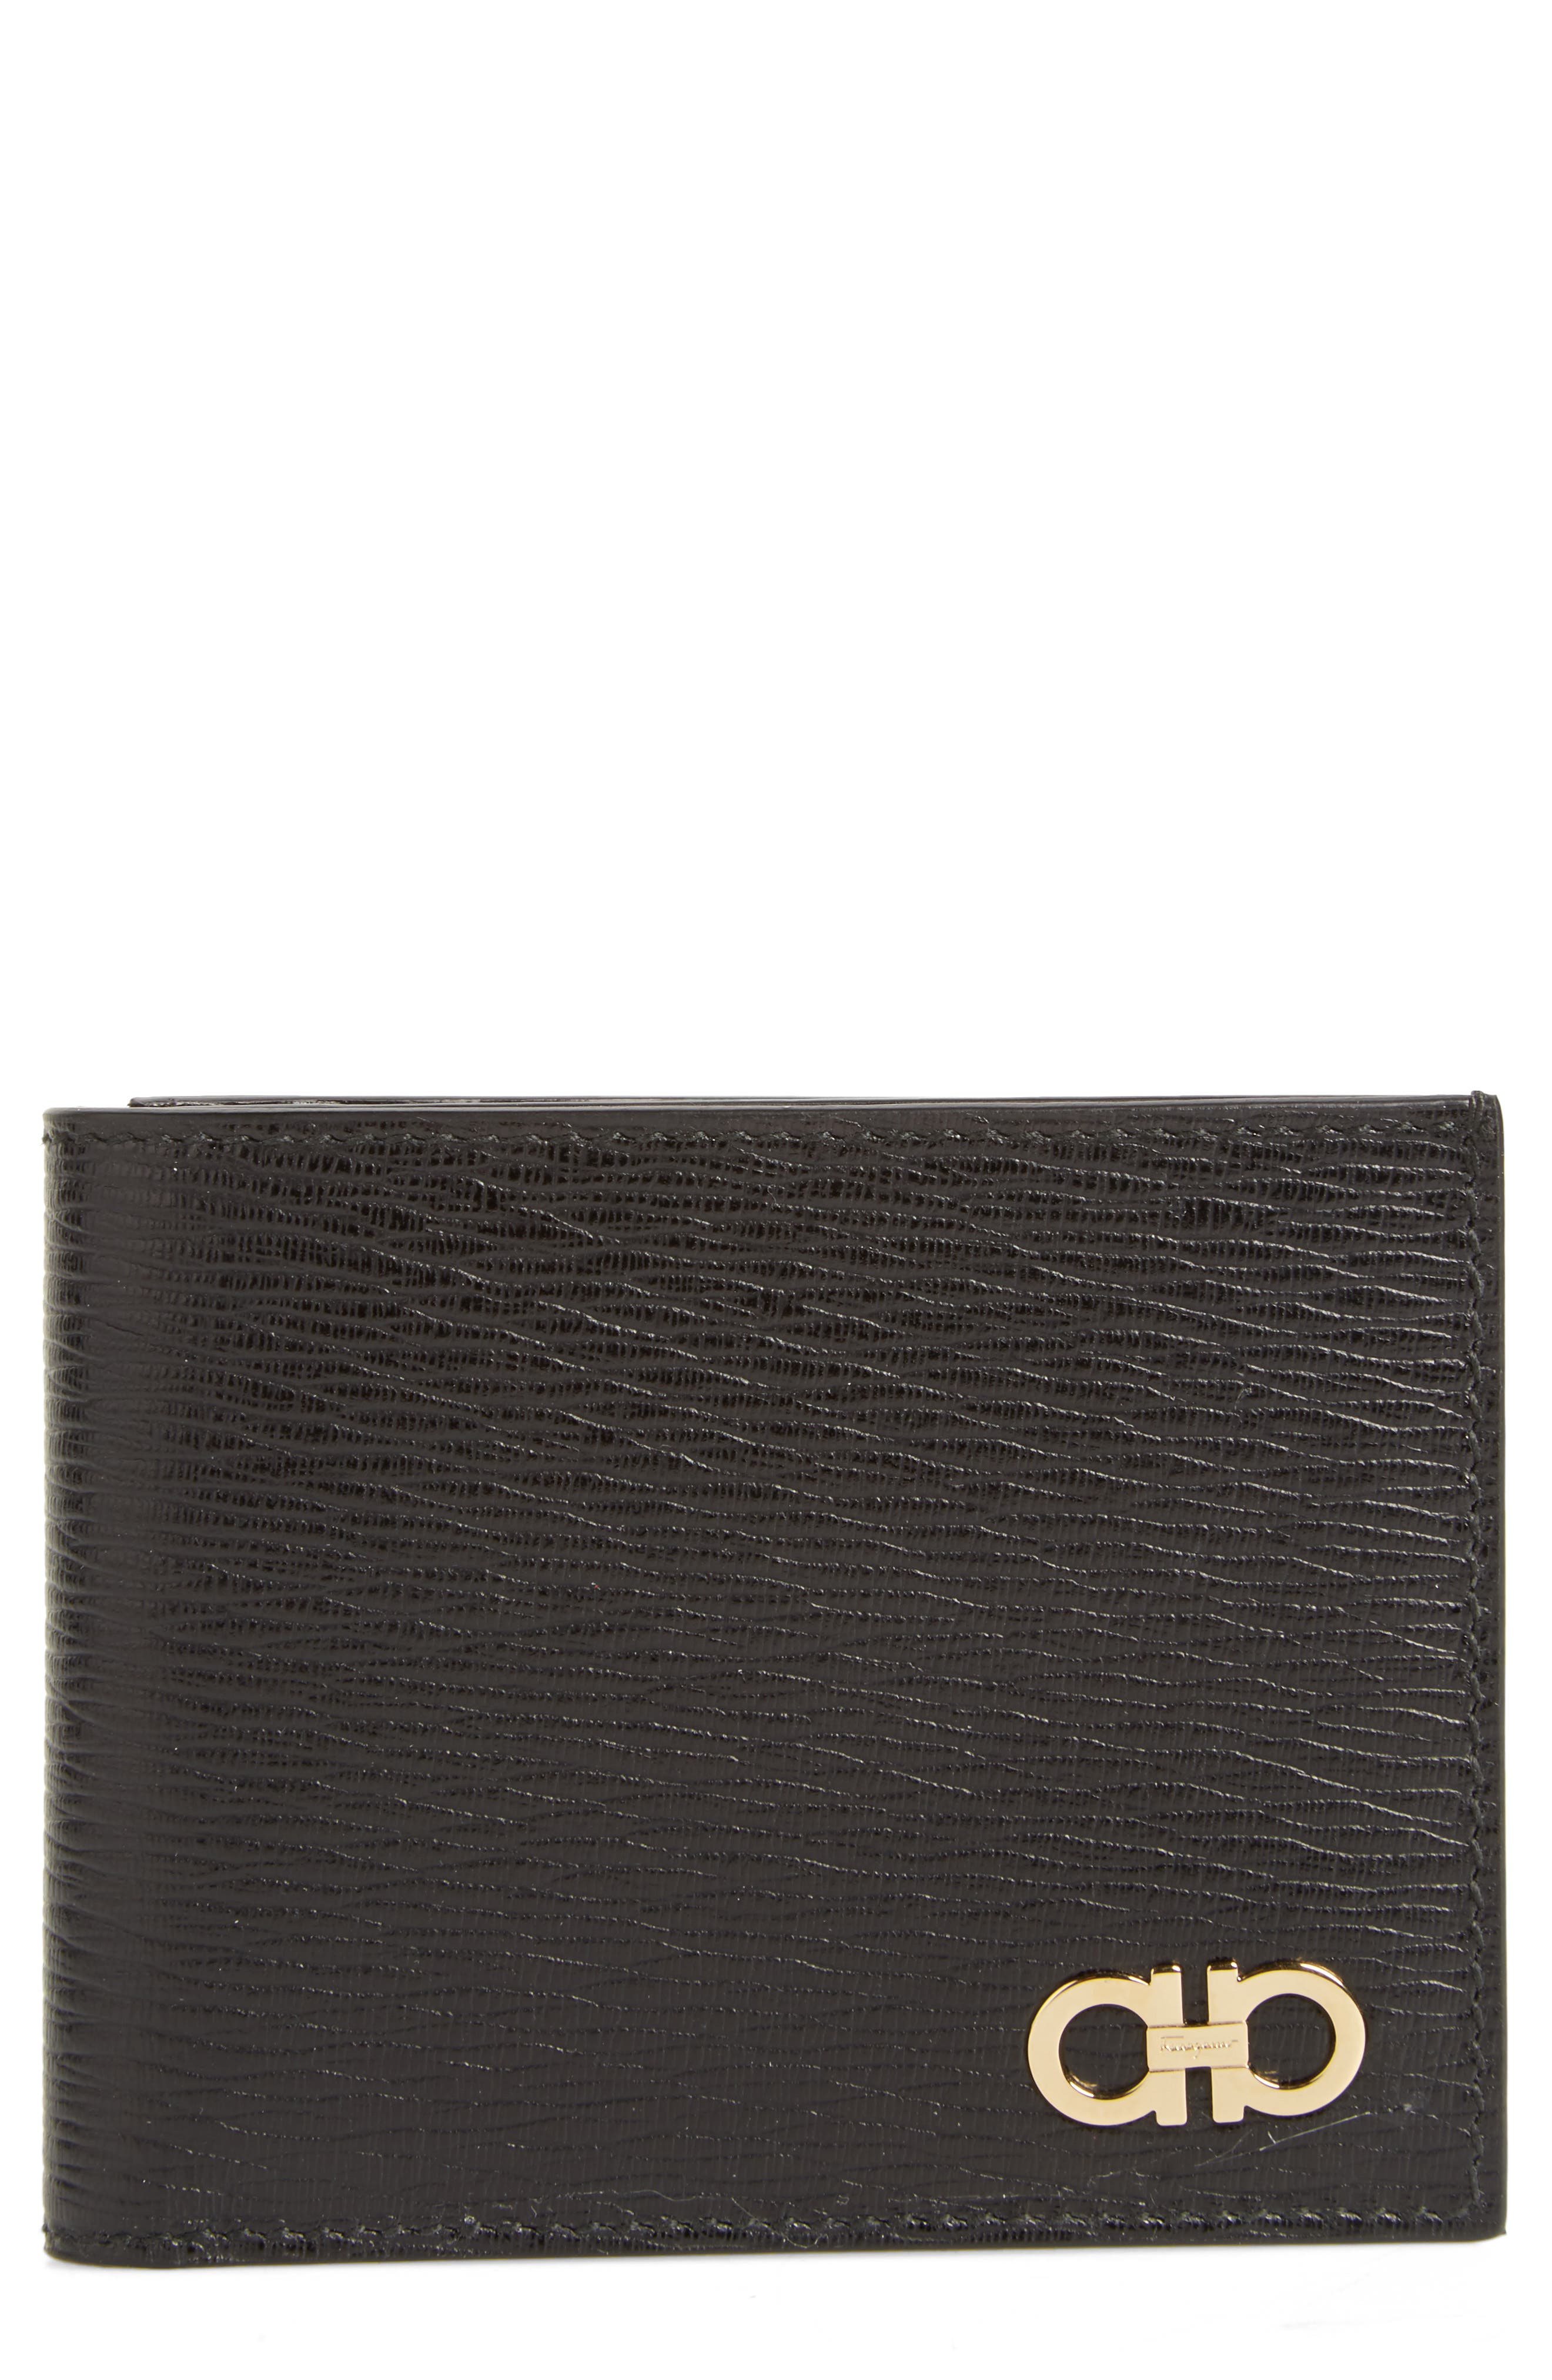 Revival Leather Wallet,                             Main thumbnail 1, color,                             001